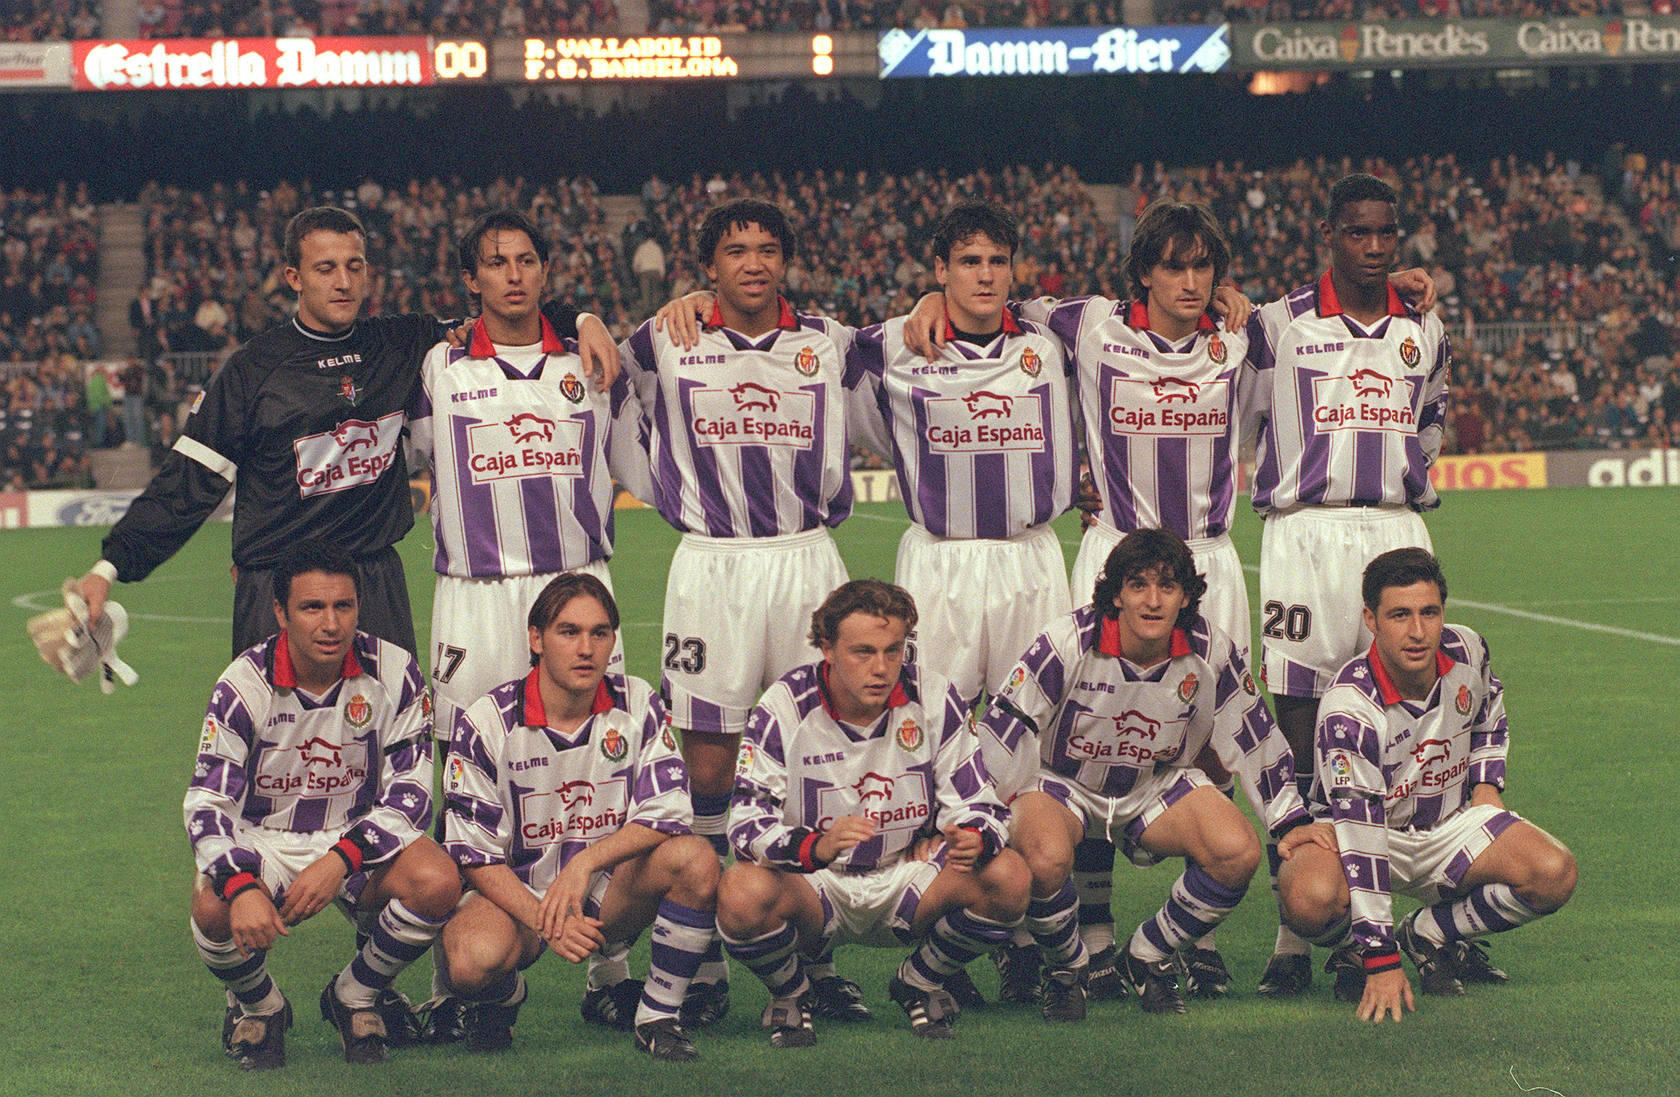 Partido Barcelona-Real Valladolid en el Camp Nou en el a&ntilde;o 1997